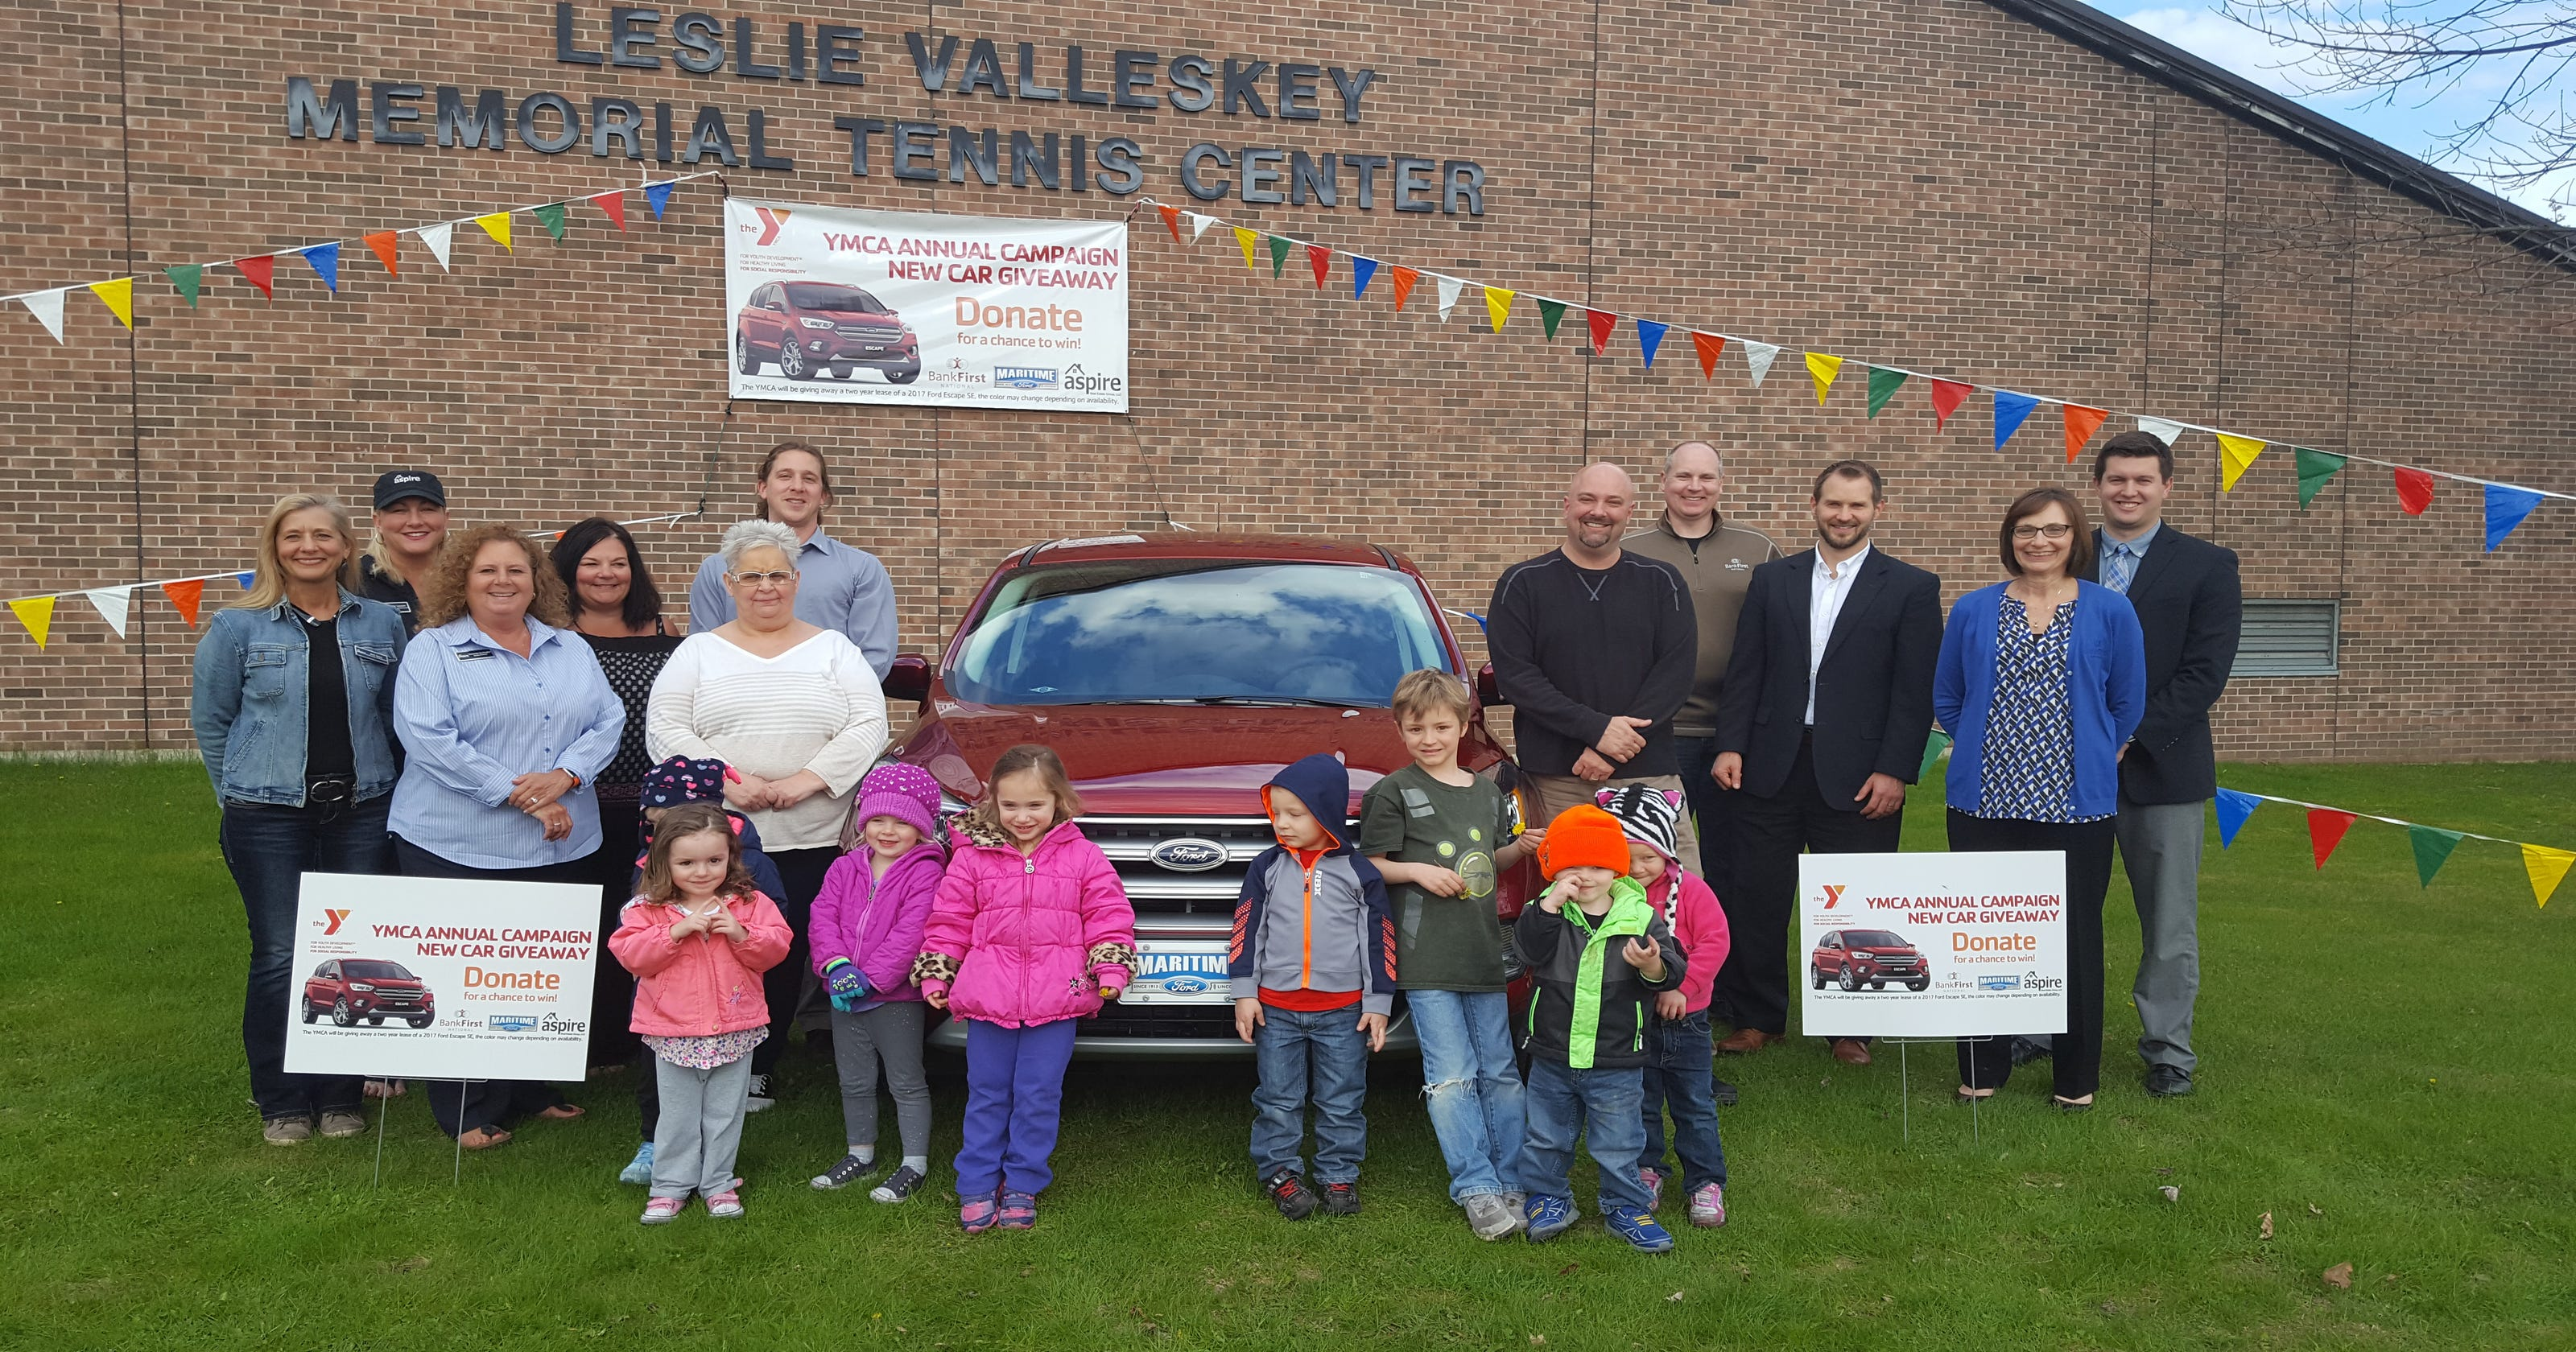 Deadline nears for YMCA's New Car Giveaway